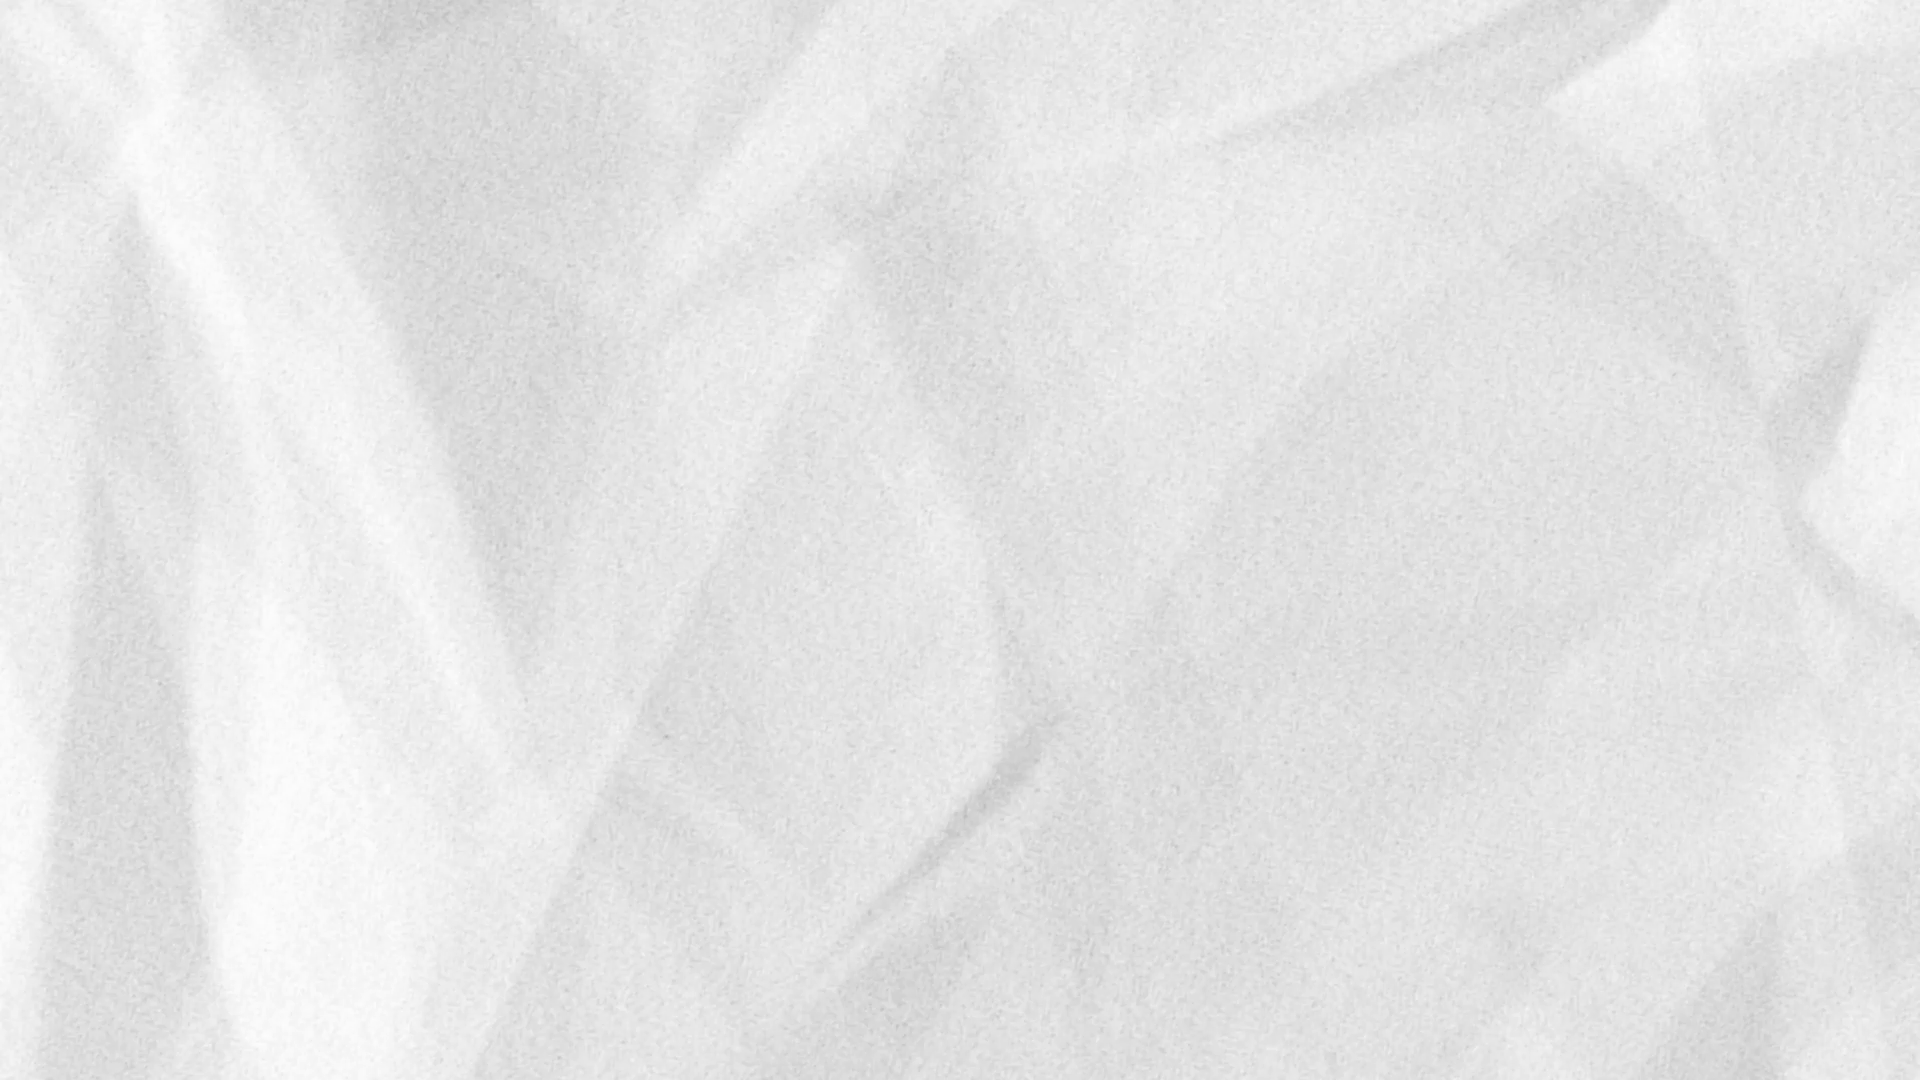 Paper Texture Png (109+ images in Collection) Page 1.